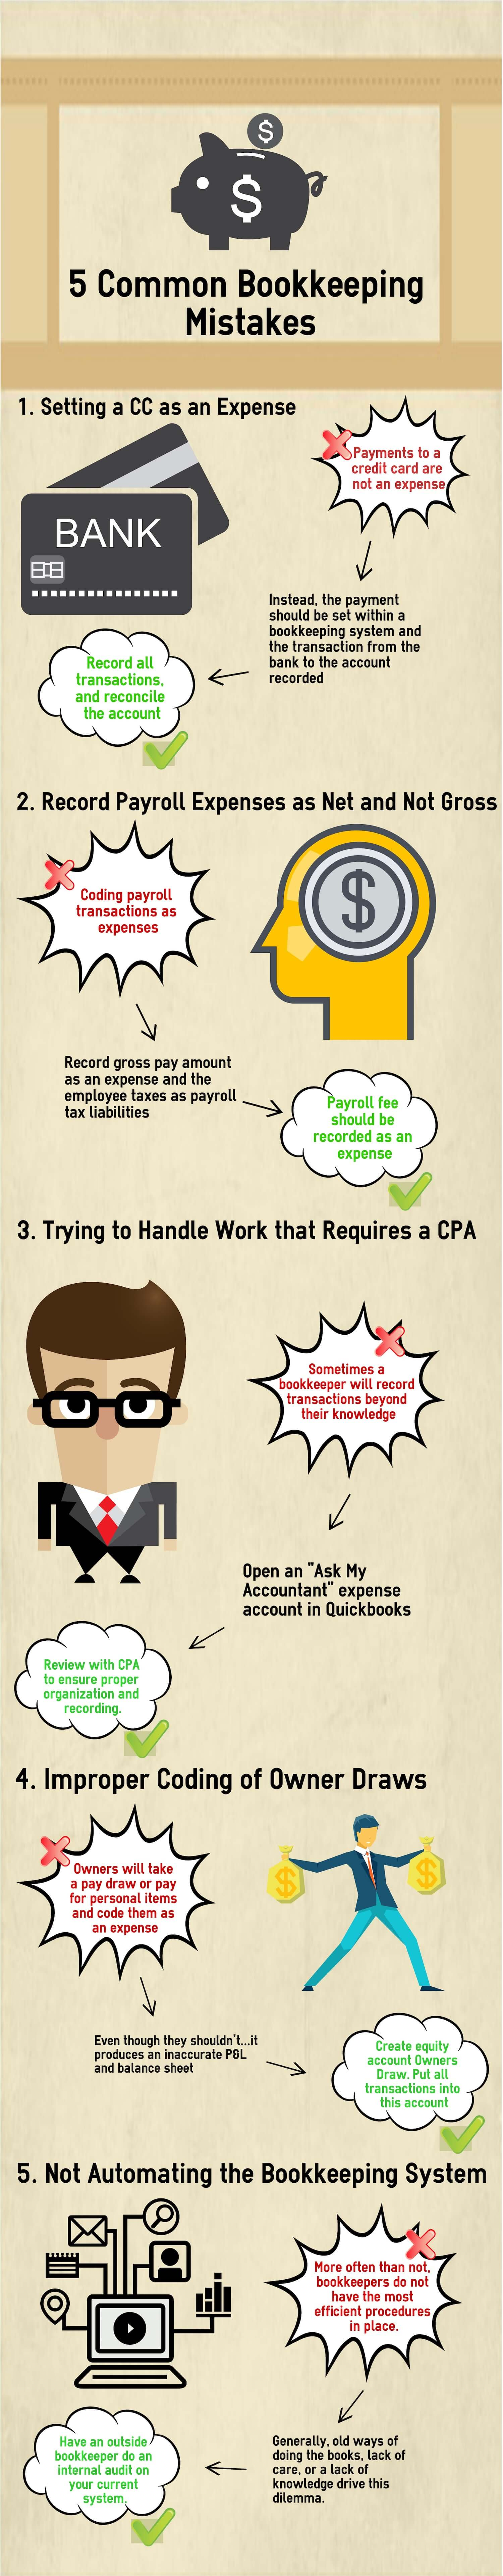 [Infographic] 5 Common Bookkeeping Mistakes